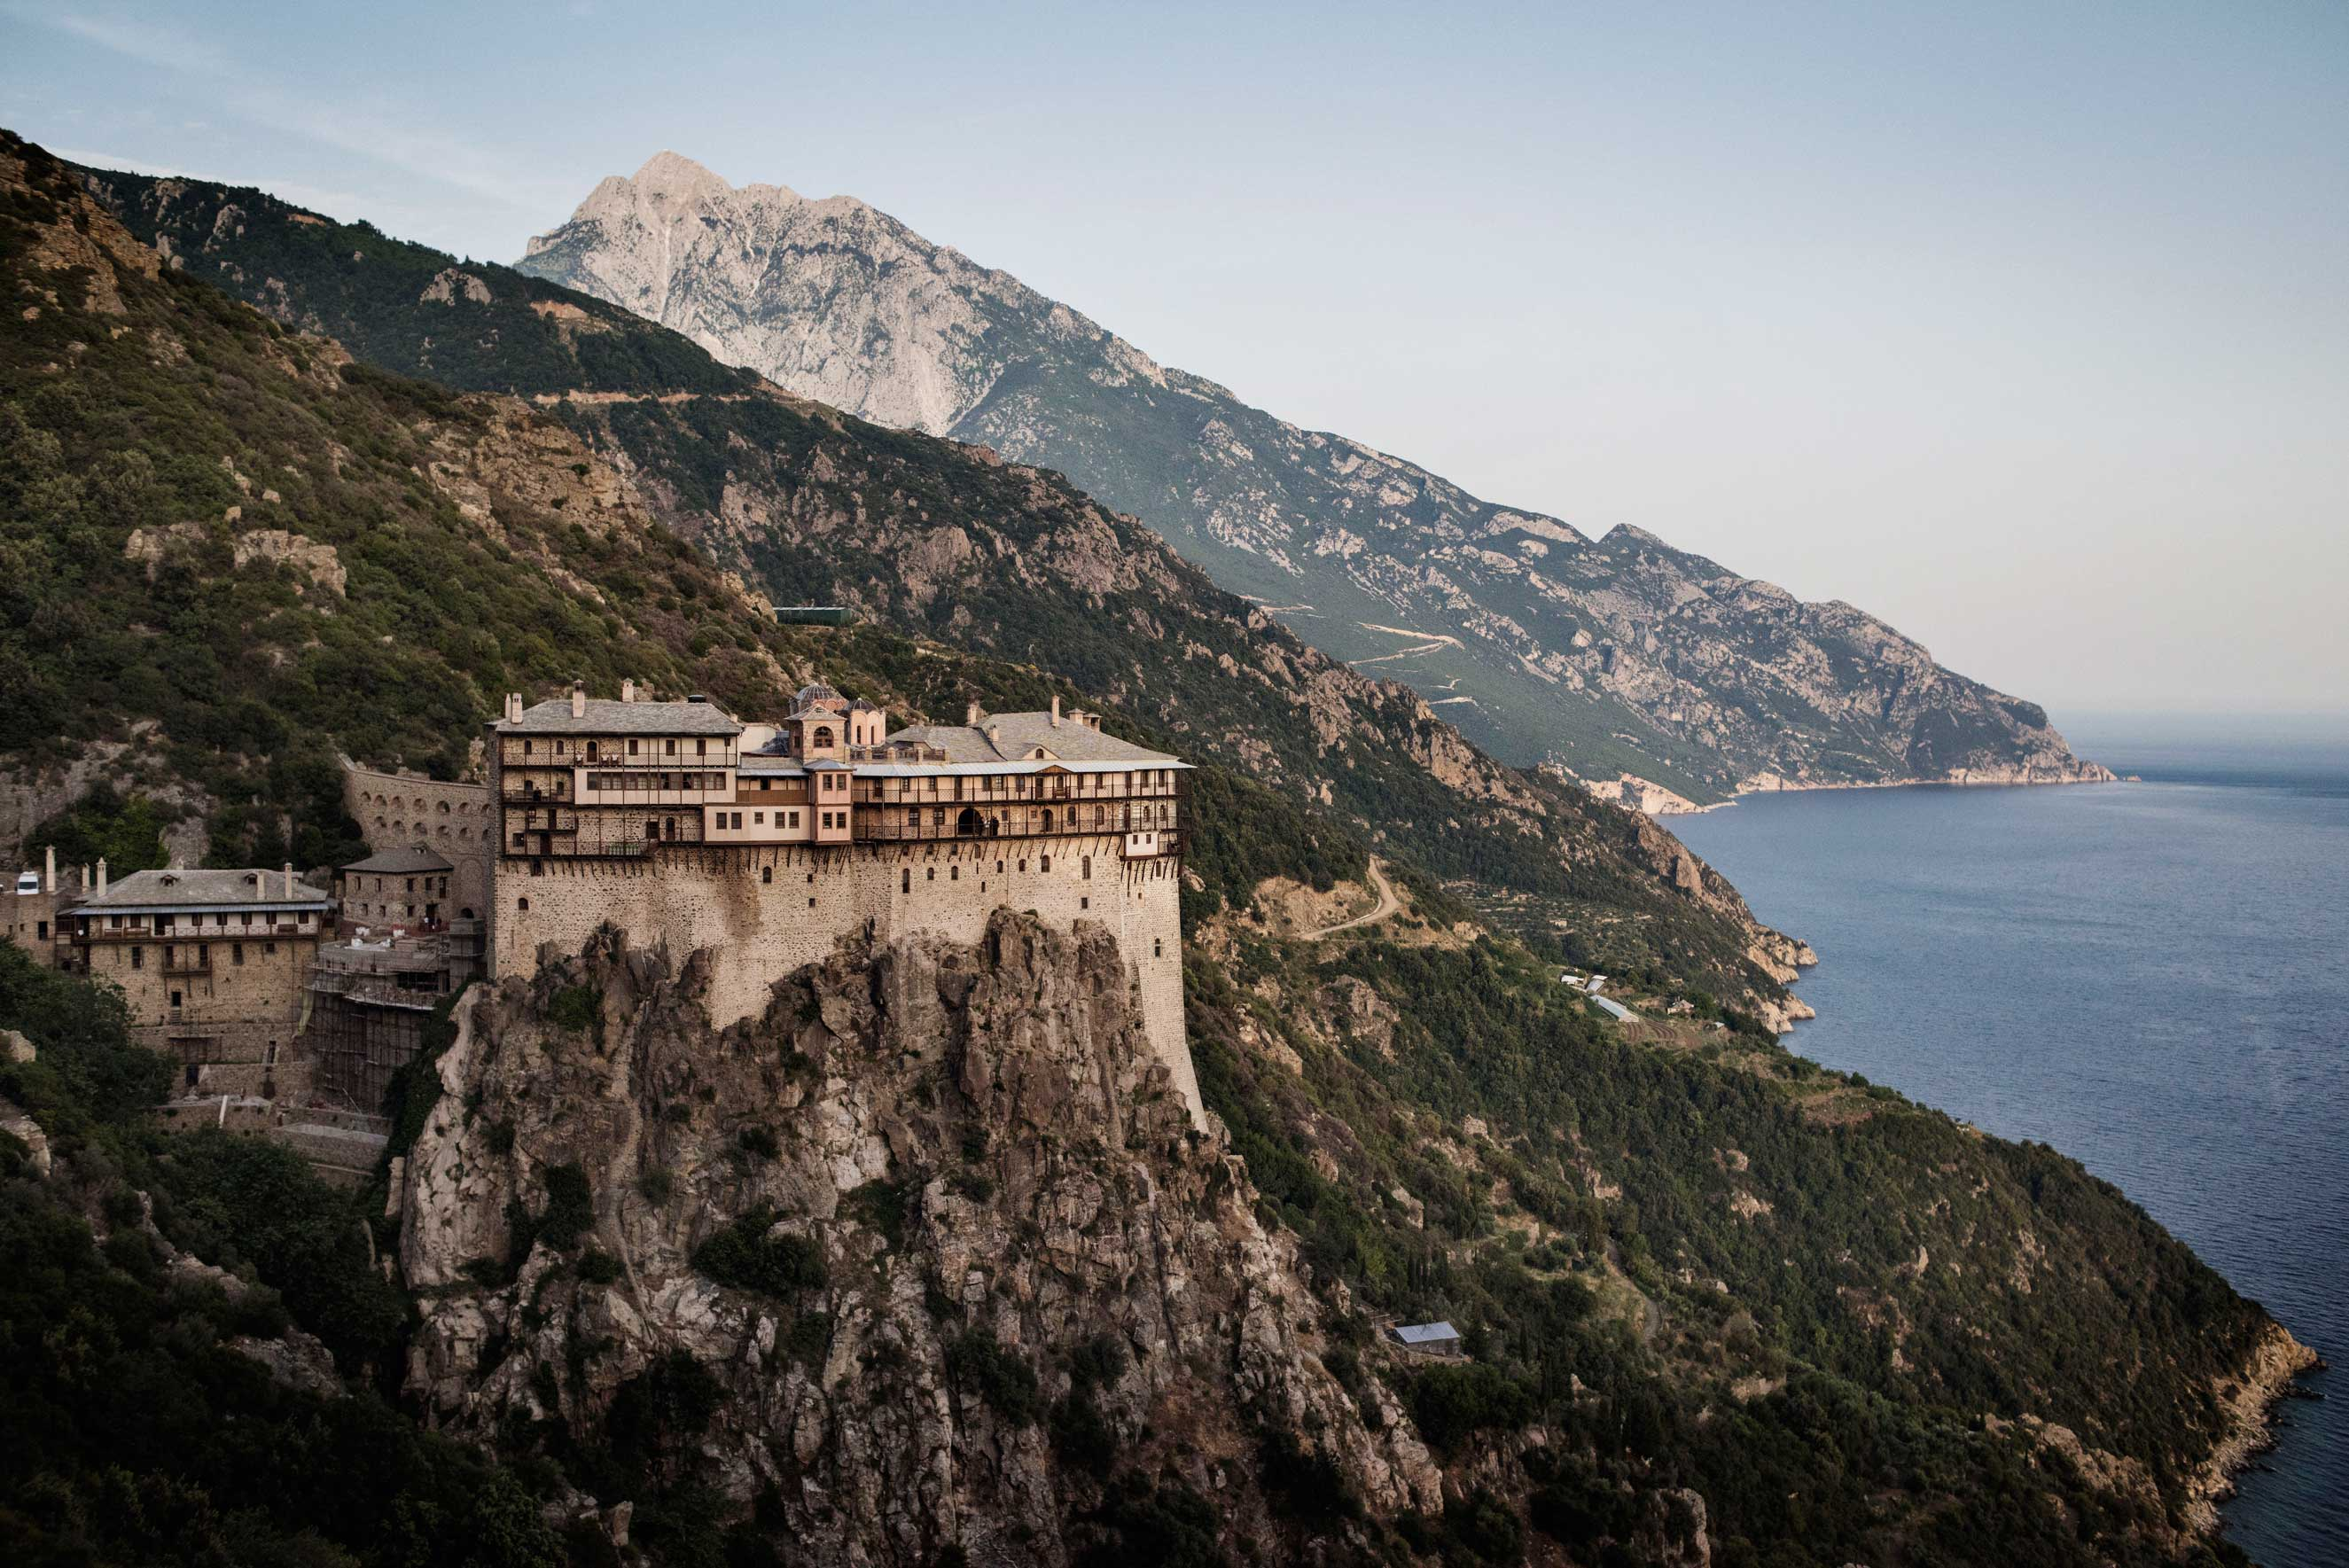 The Simonopetra Monastery sits above the Aegean Sea on the Mount Athos peninsula